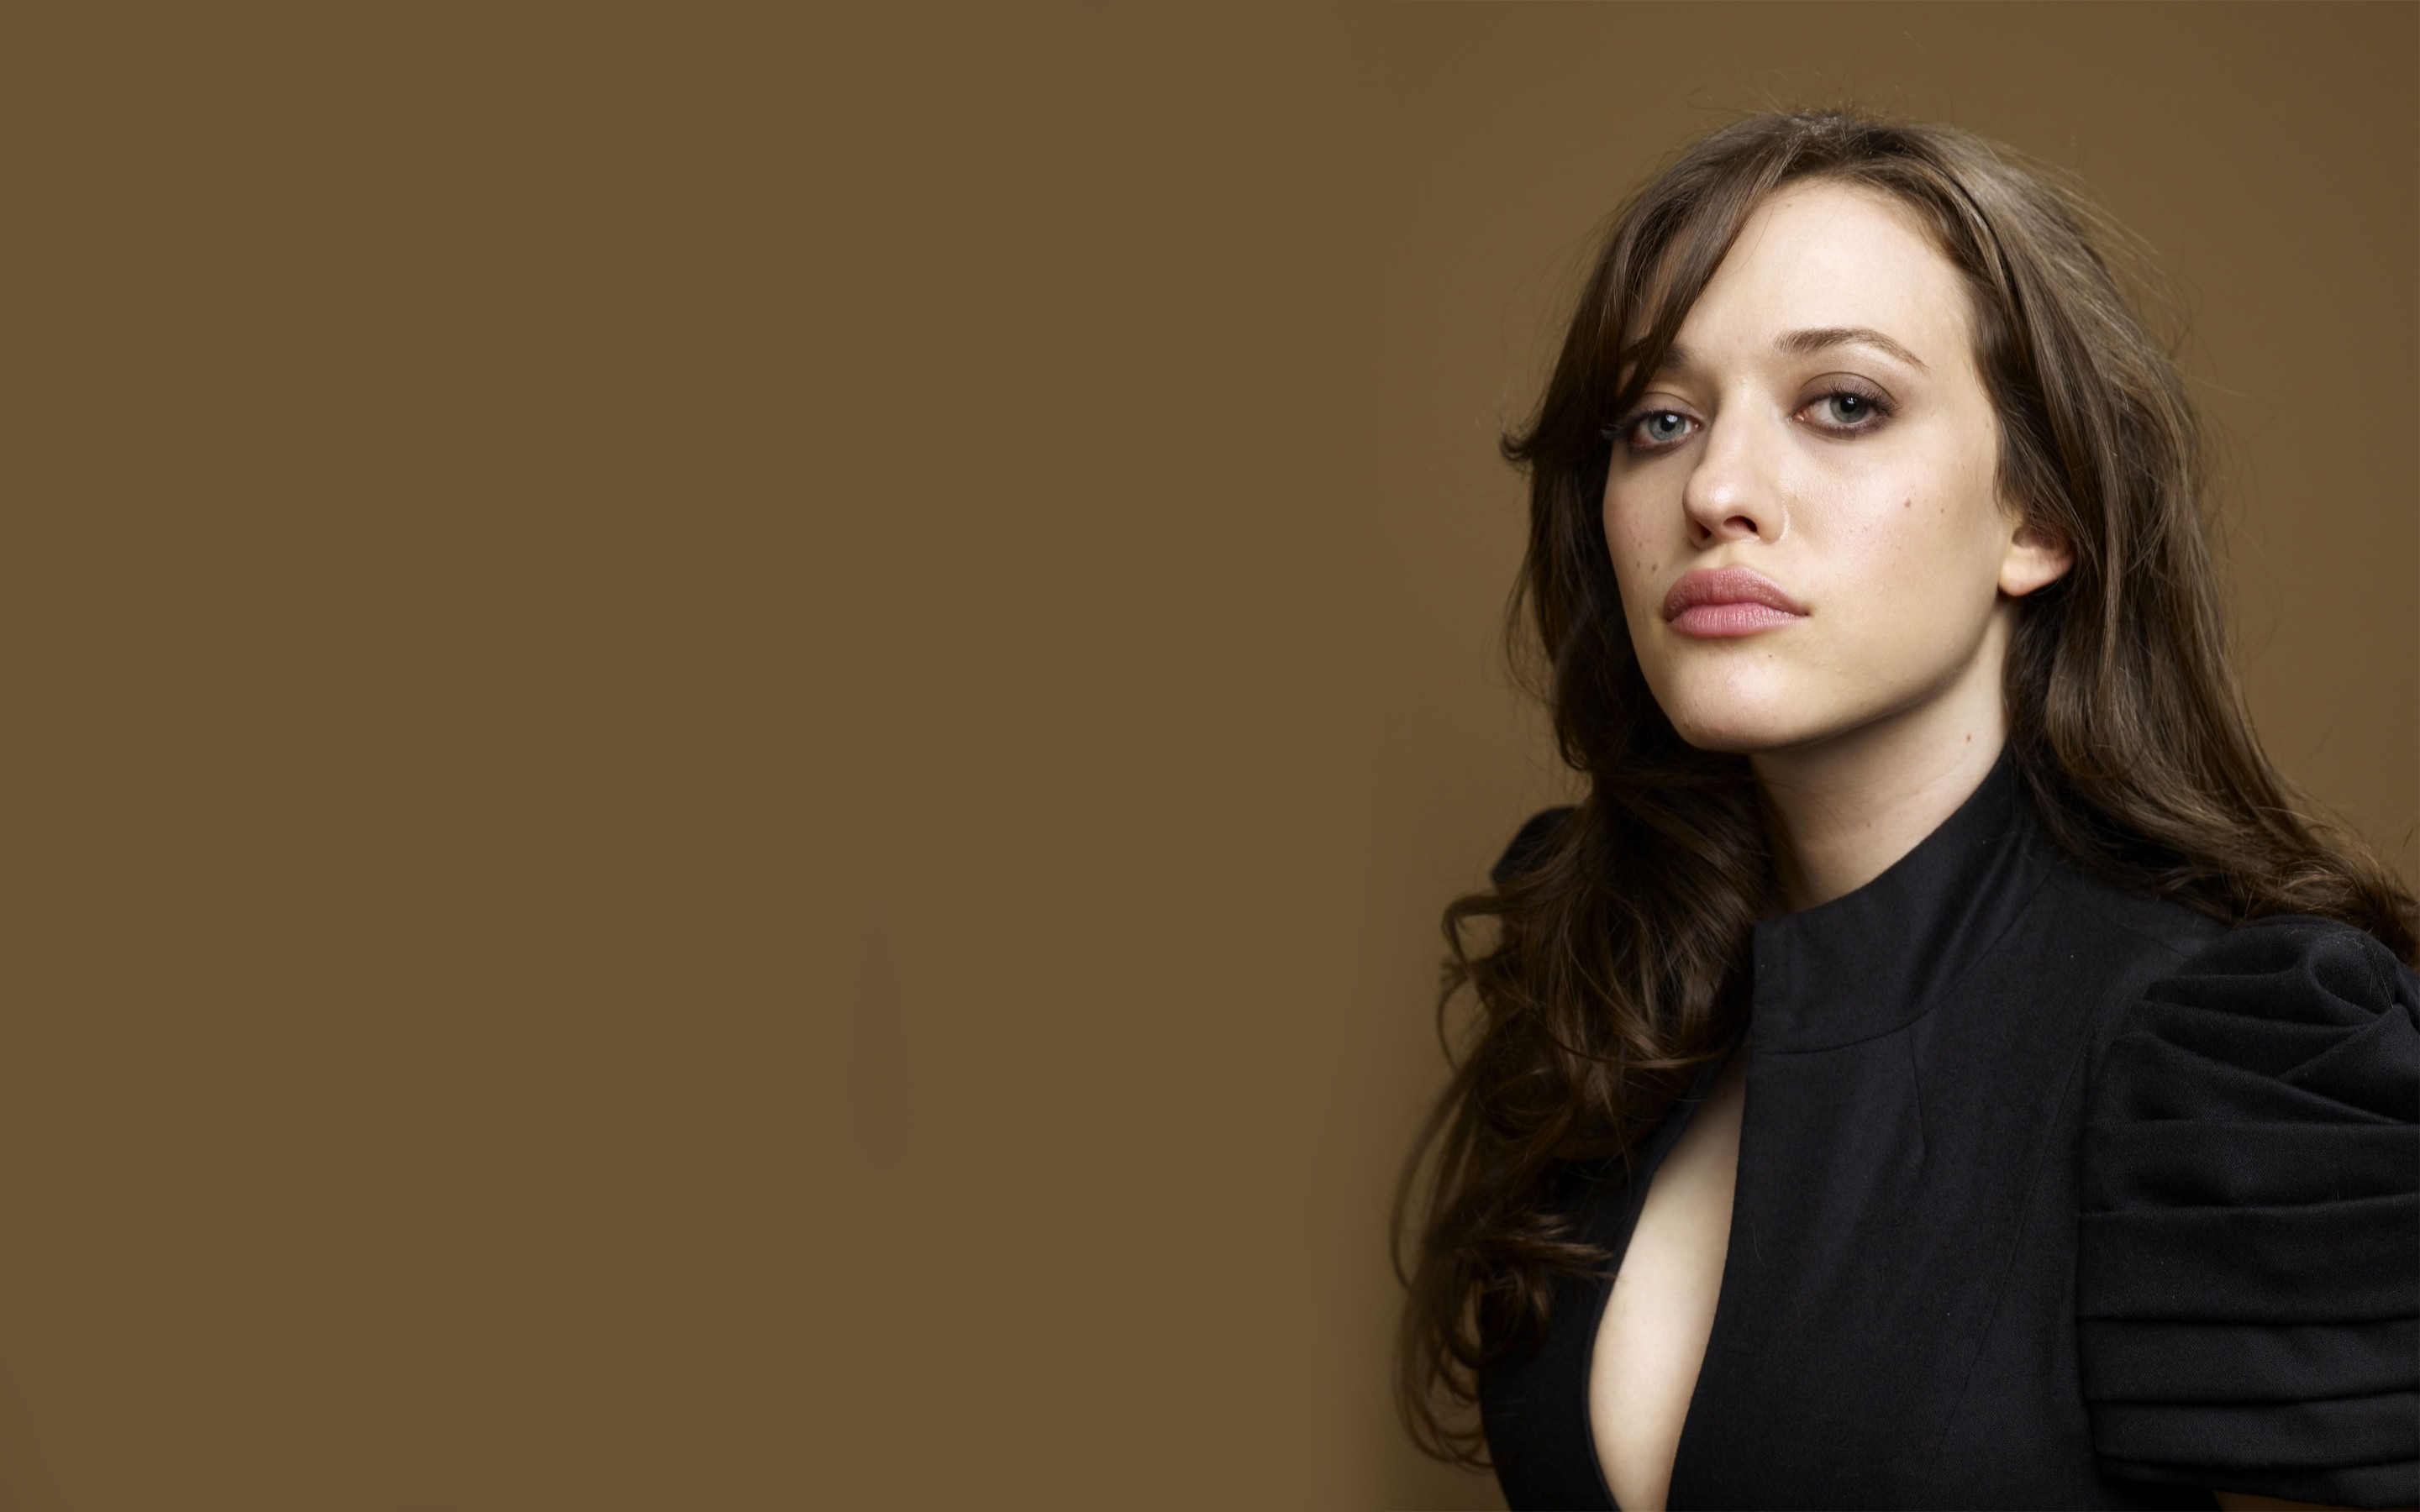 Kat Dennings high definition wallpapers